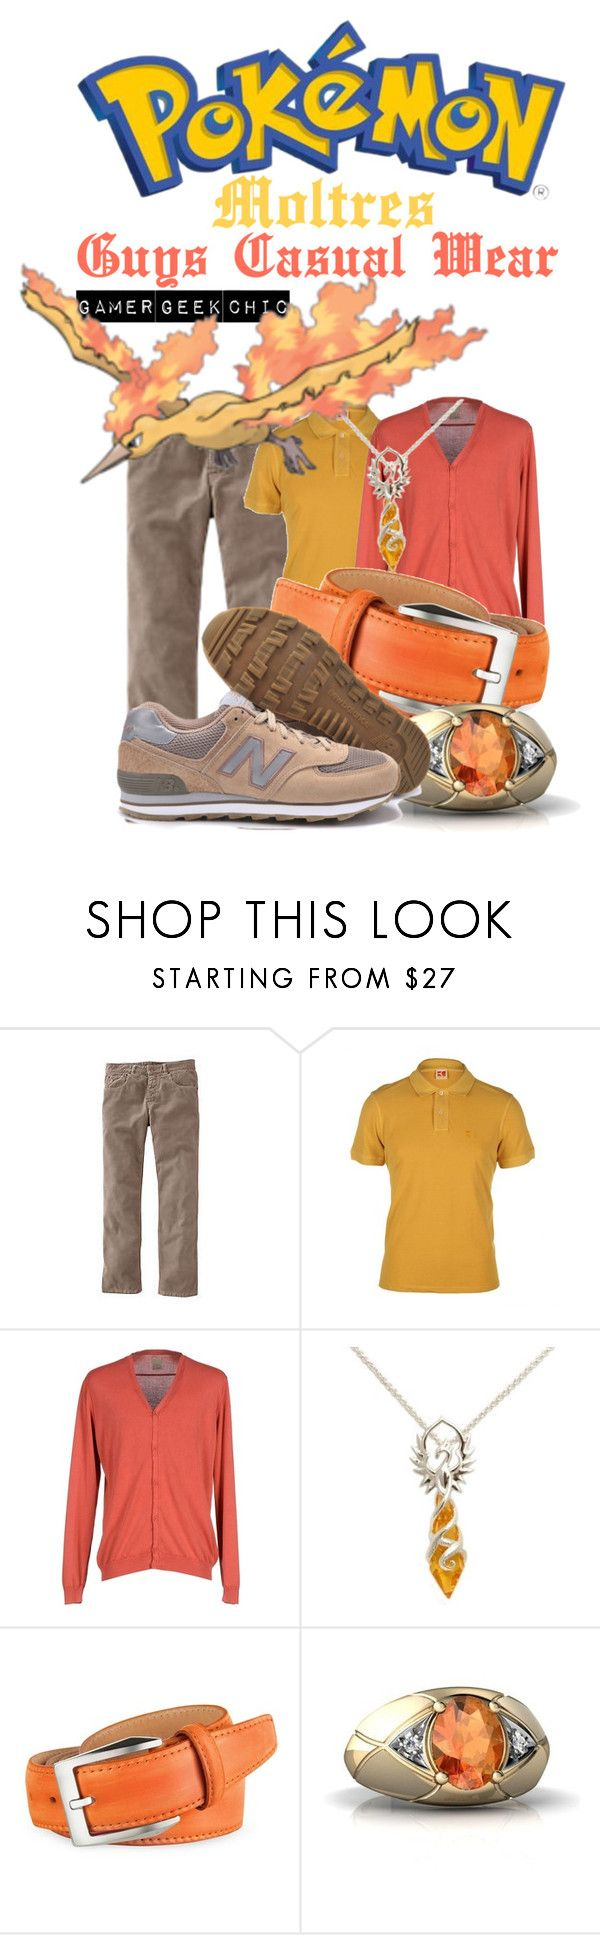 """Pokémon - Moltres"" by gamer-geek-chic ❤ liked on Polyvore featuring Boden, BOSS Orange, KAOS, pakerson and New Balance"